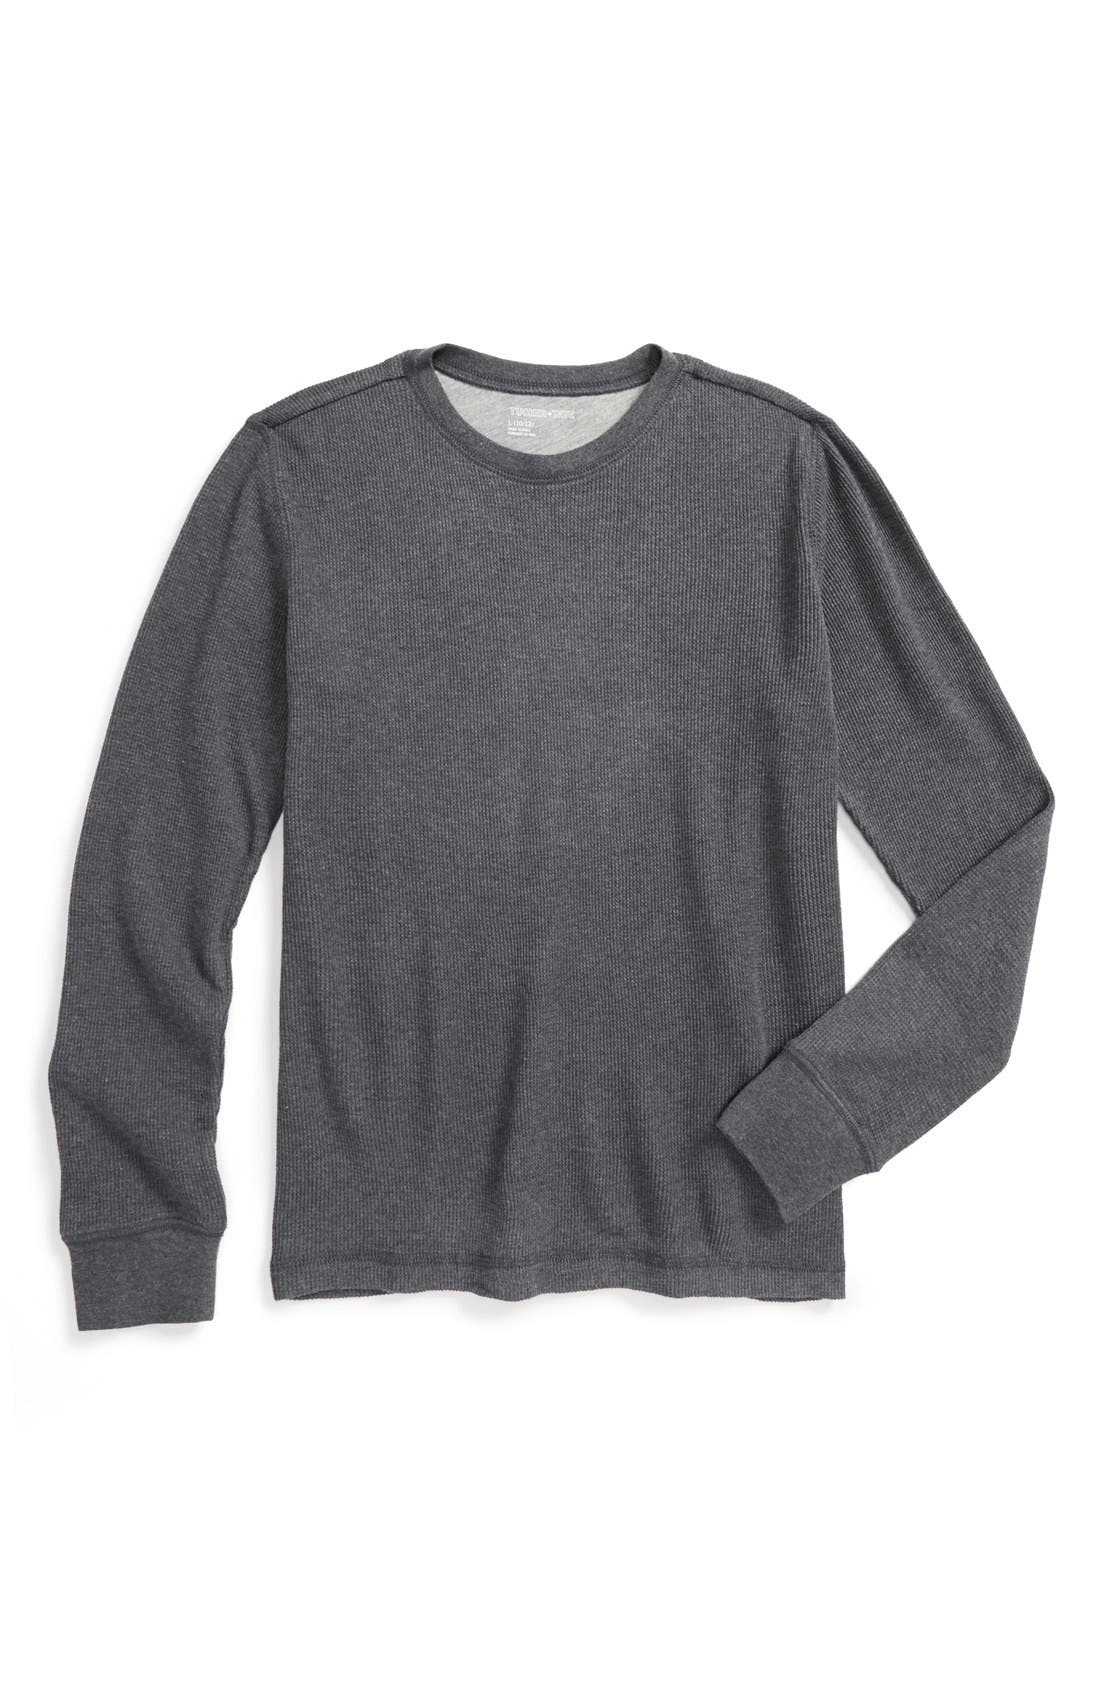 Long Sleeve Thermal T-Shirt,                         Main,                         color, 030